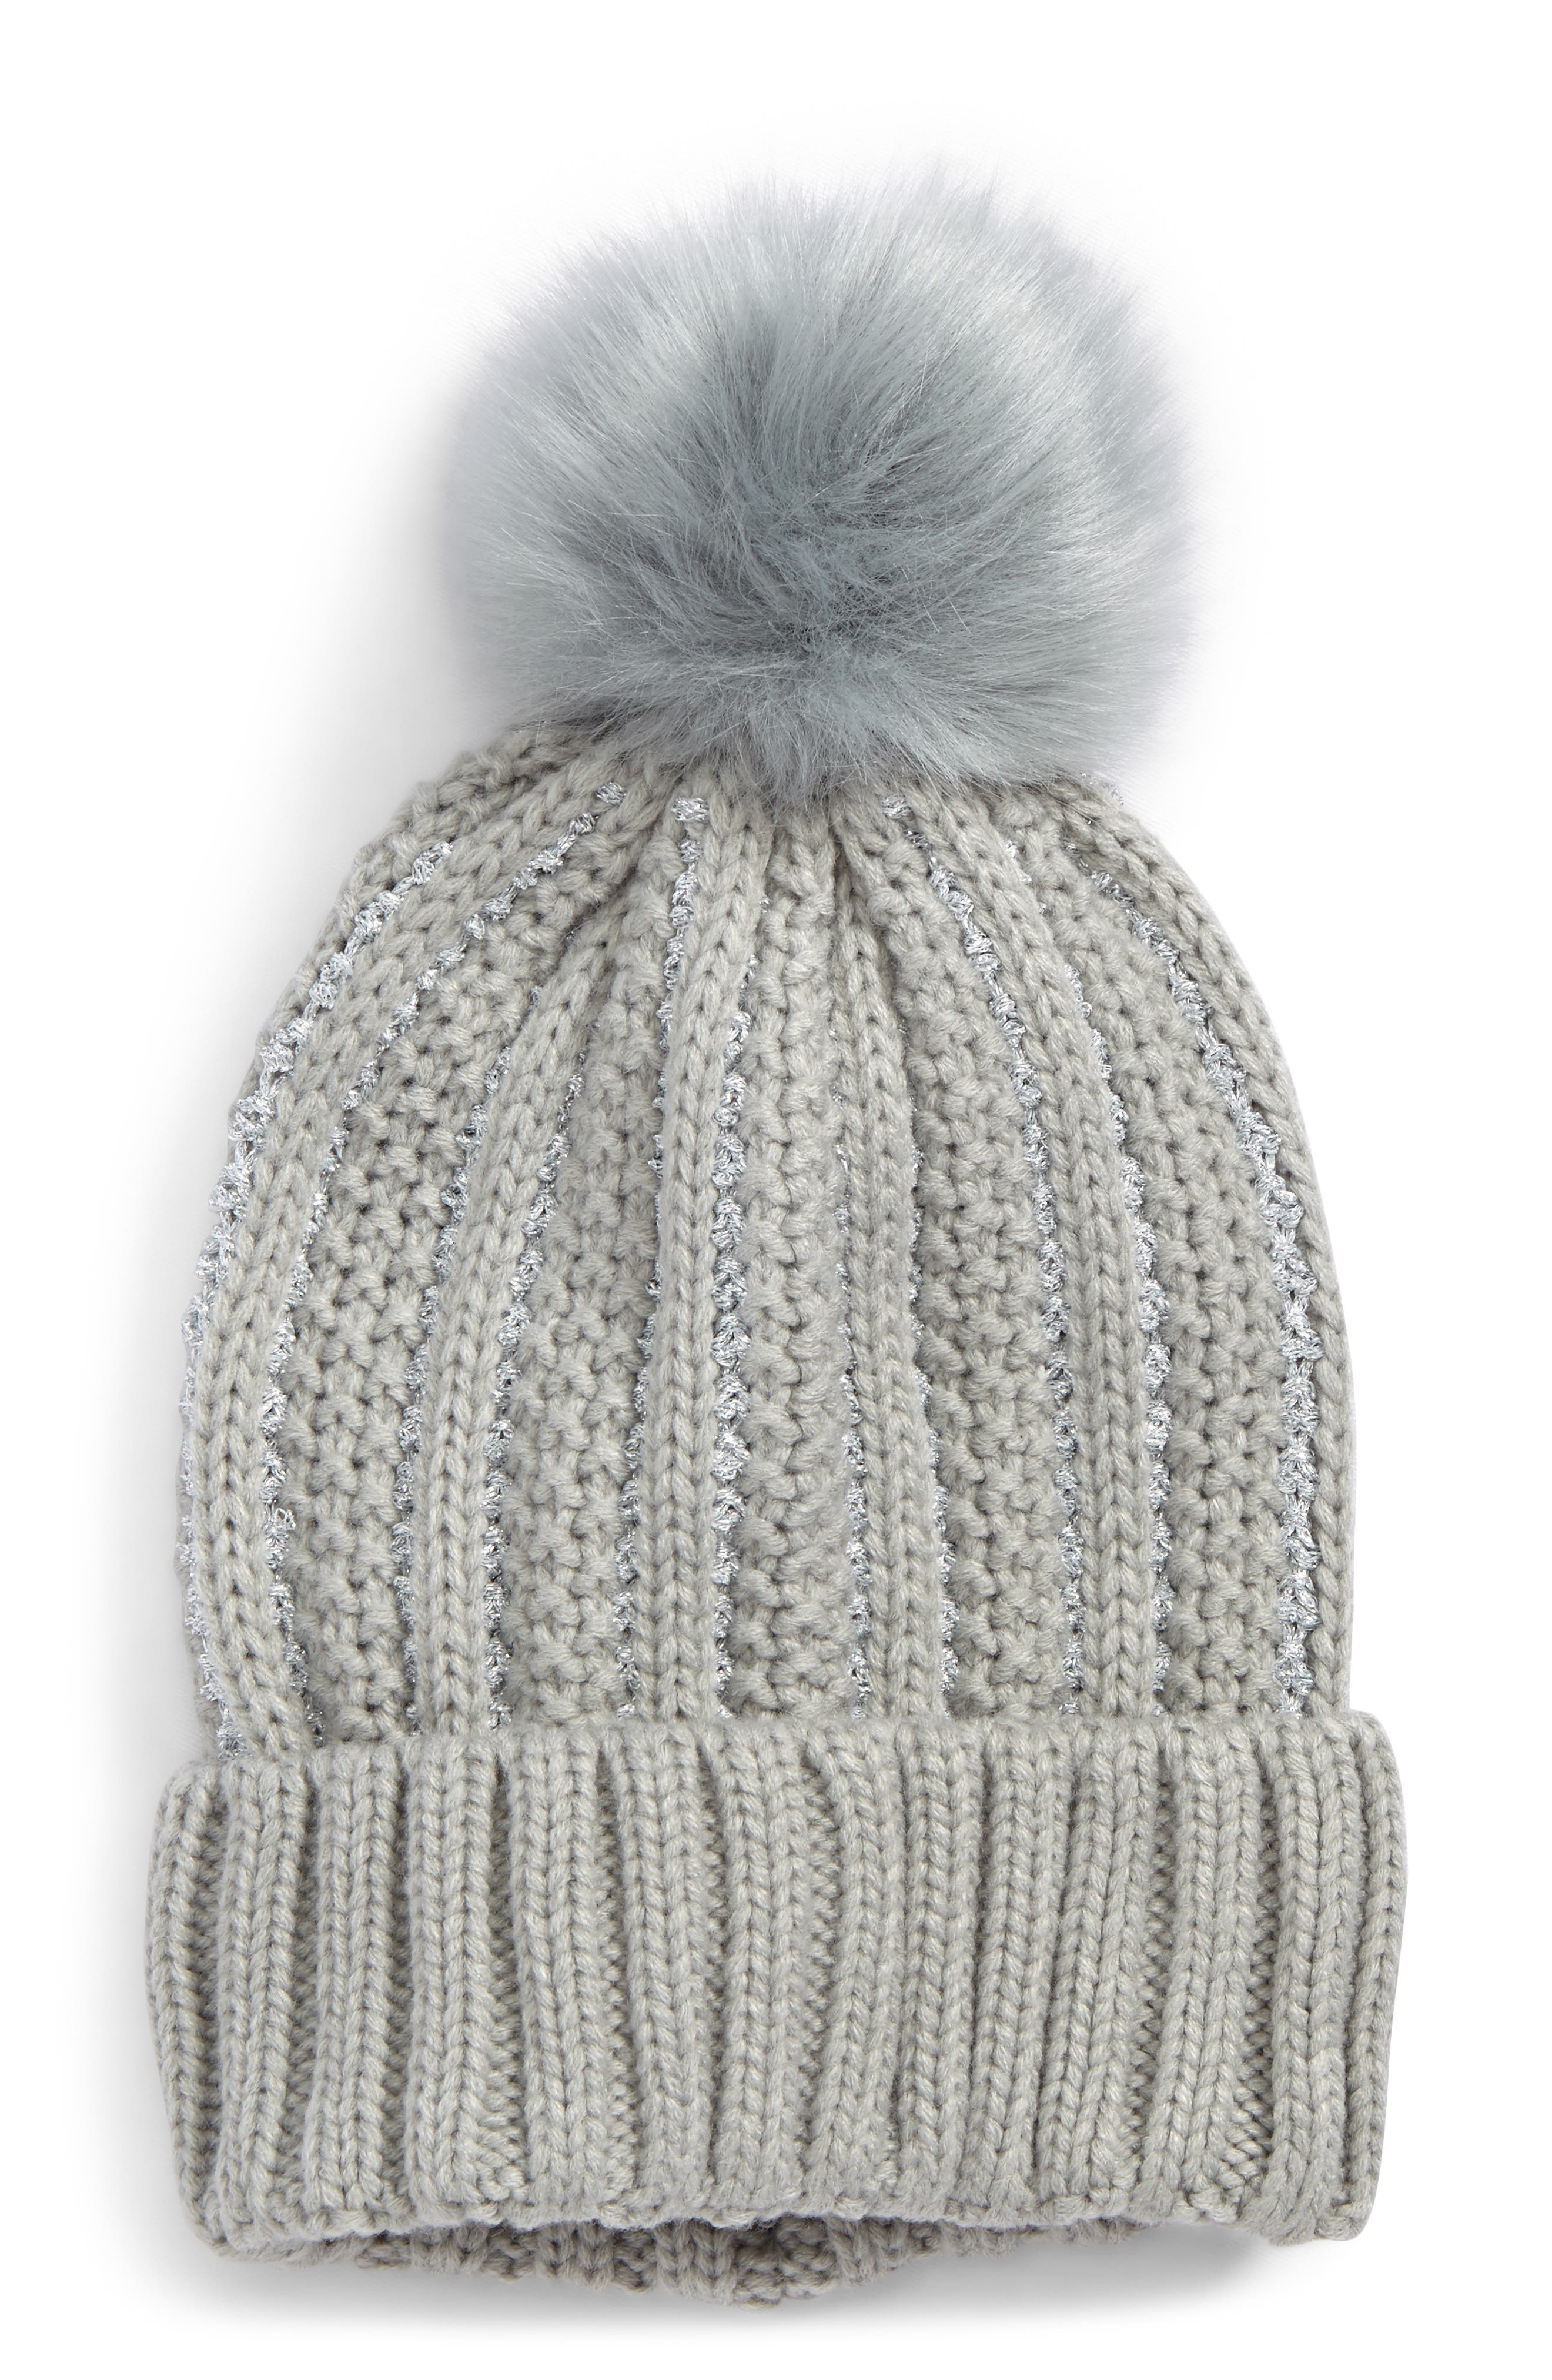 Alternate Image 1 Selected - BP. Metallic Knit Beanie with Faux Fur Pompom